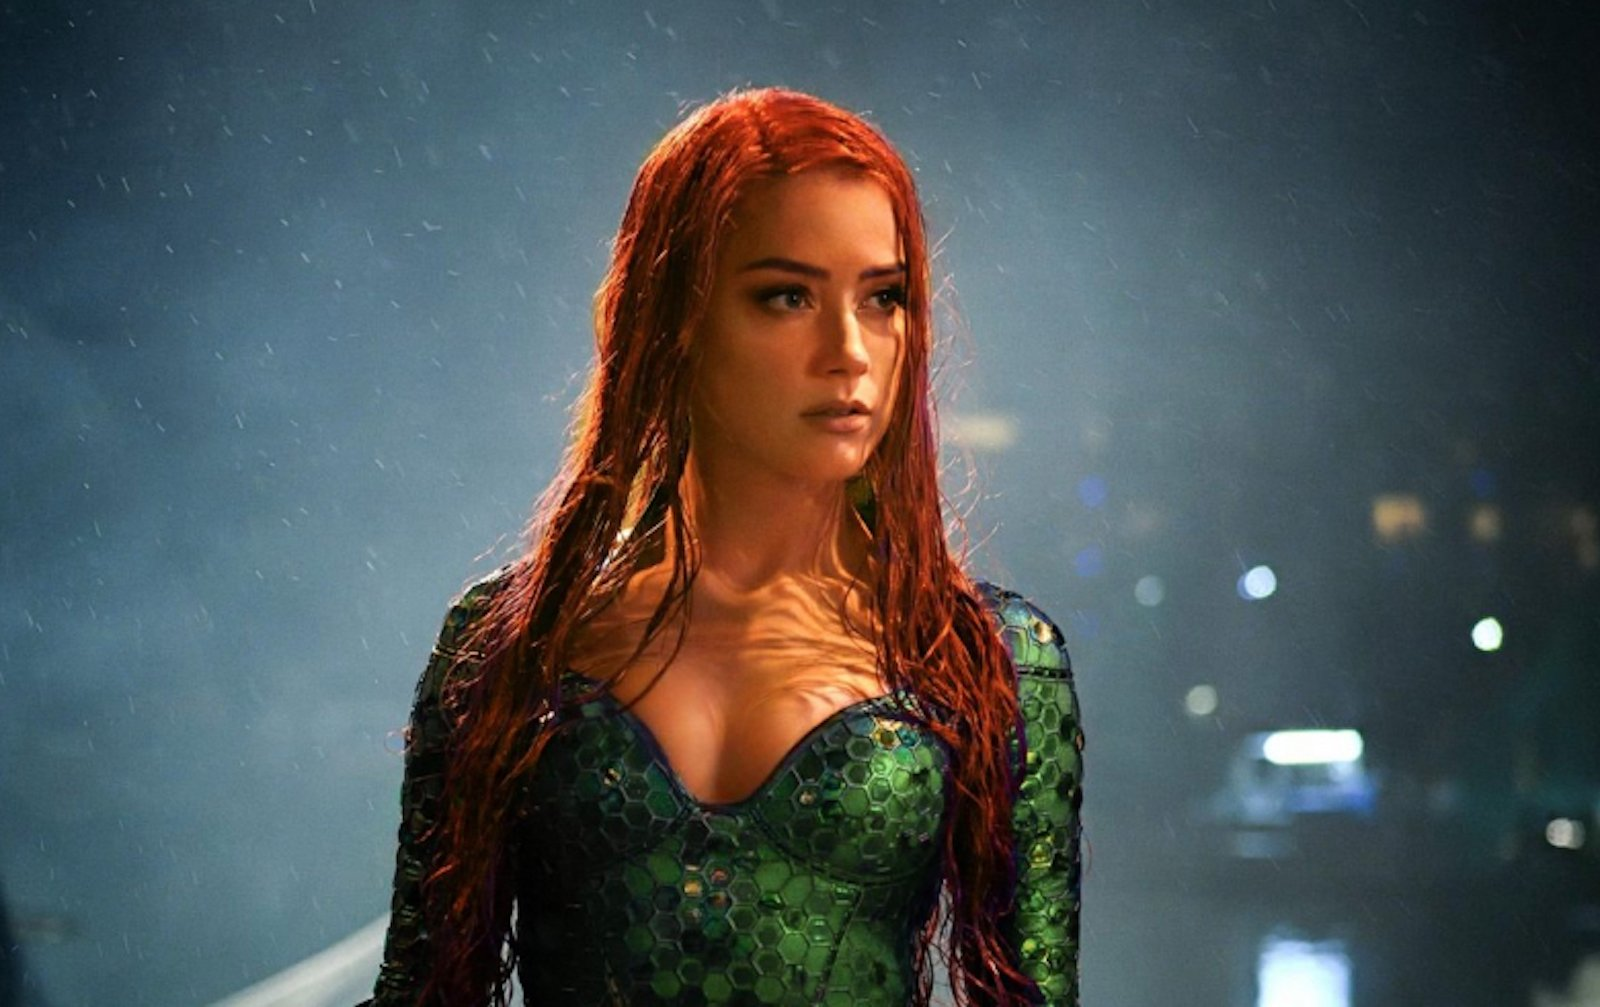 Amber Heard Won't Be Fired From Aquaman 2